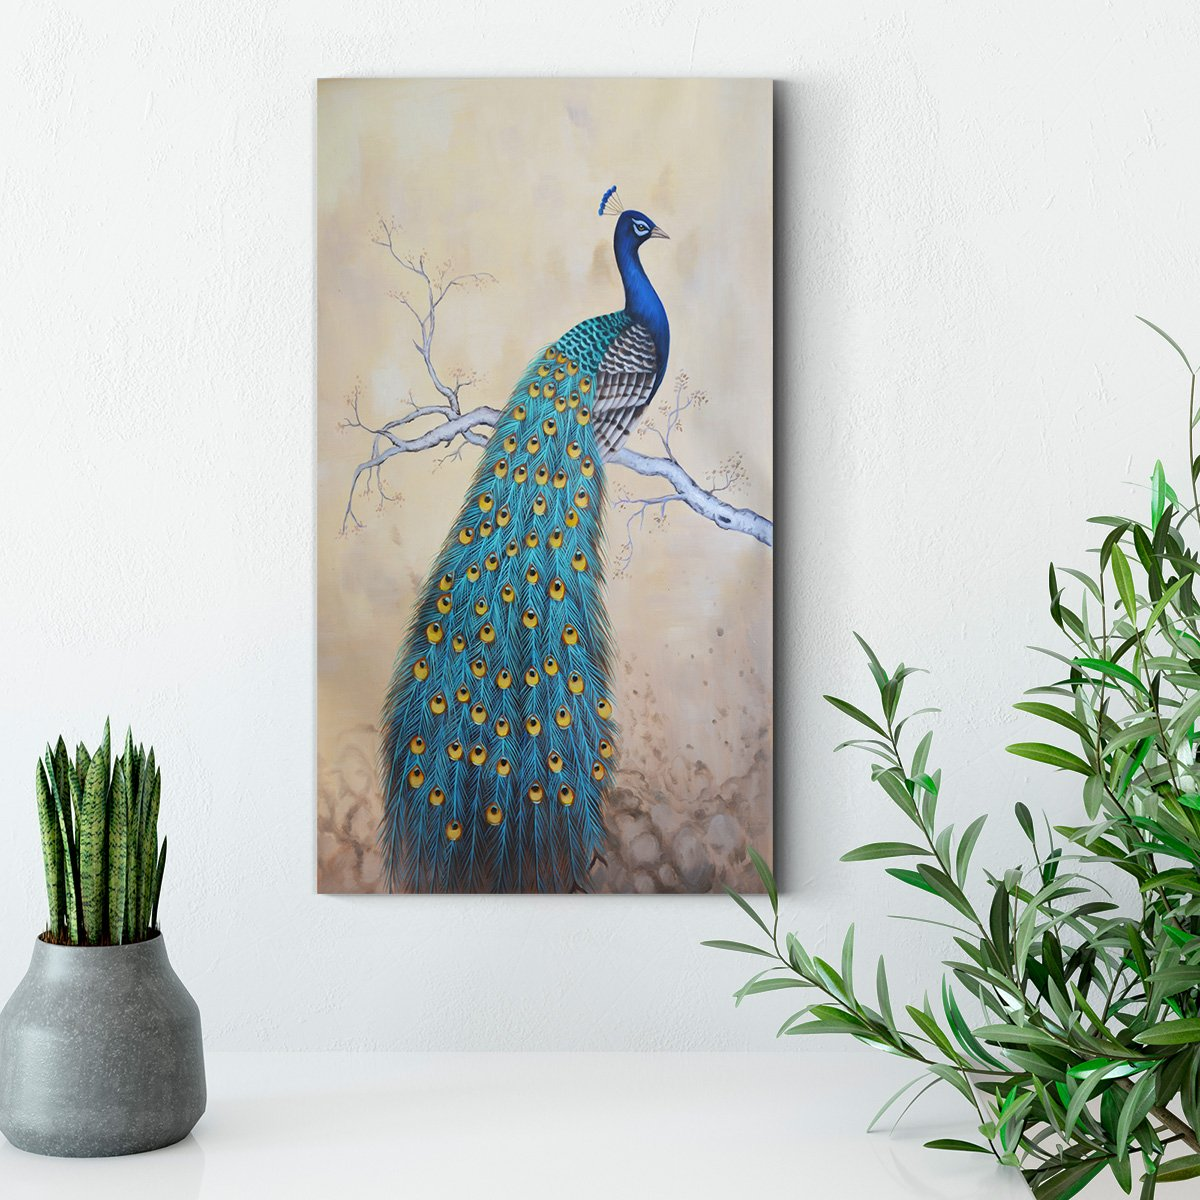 Blue peacock and tree - animal decoration painting - living room